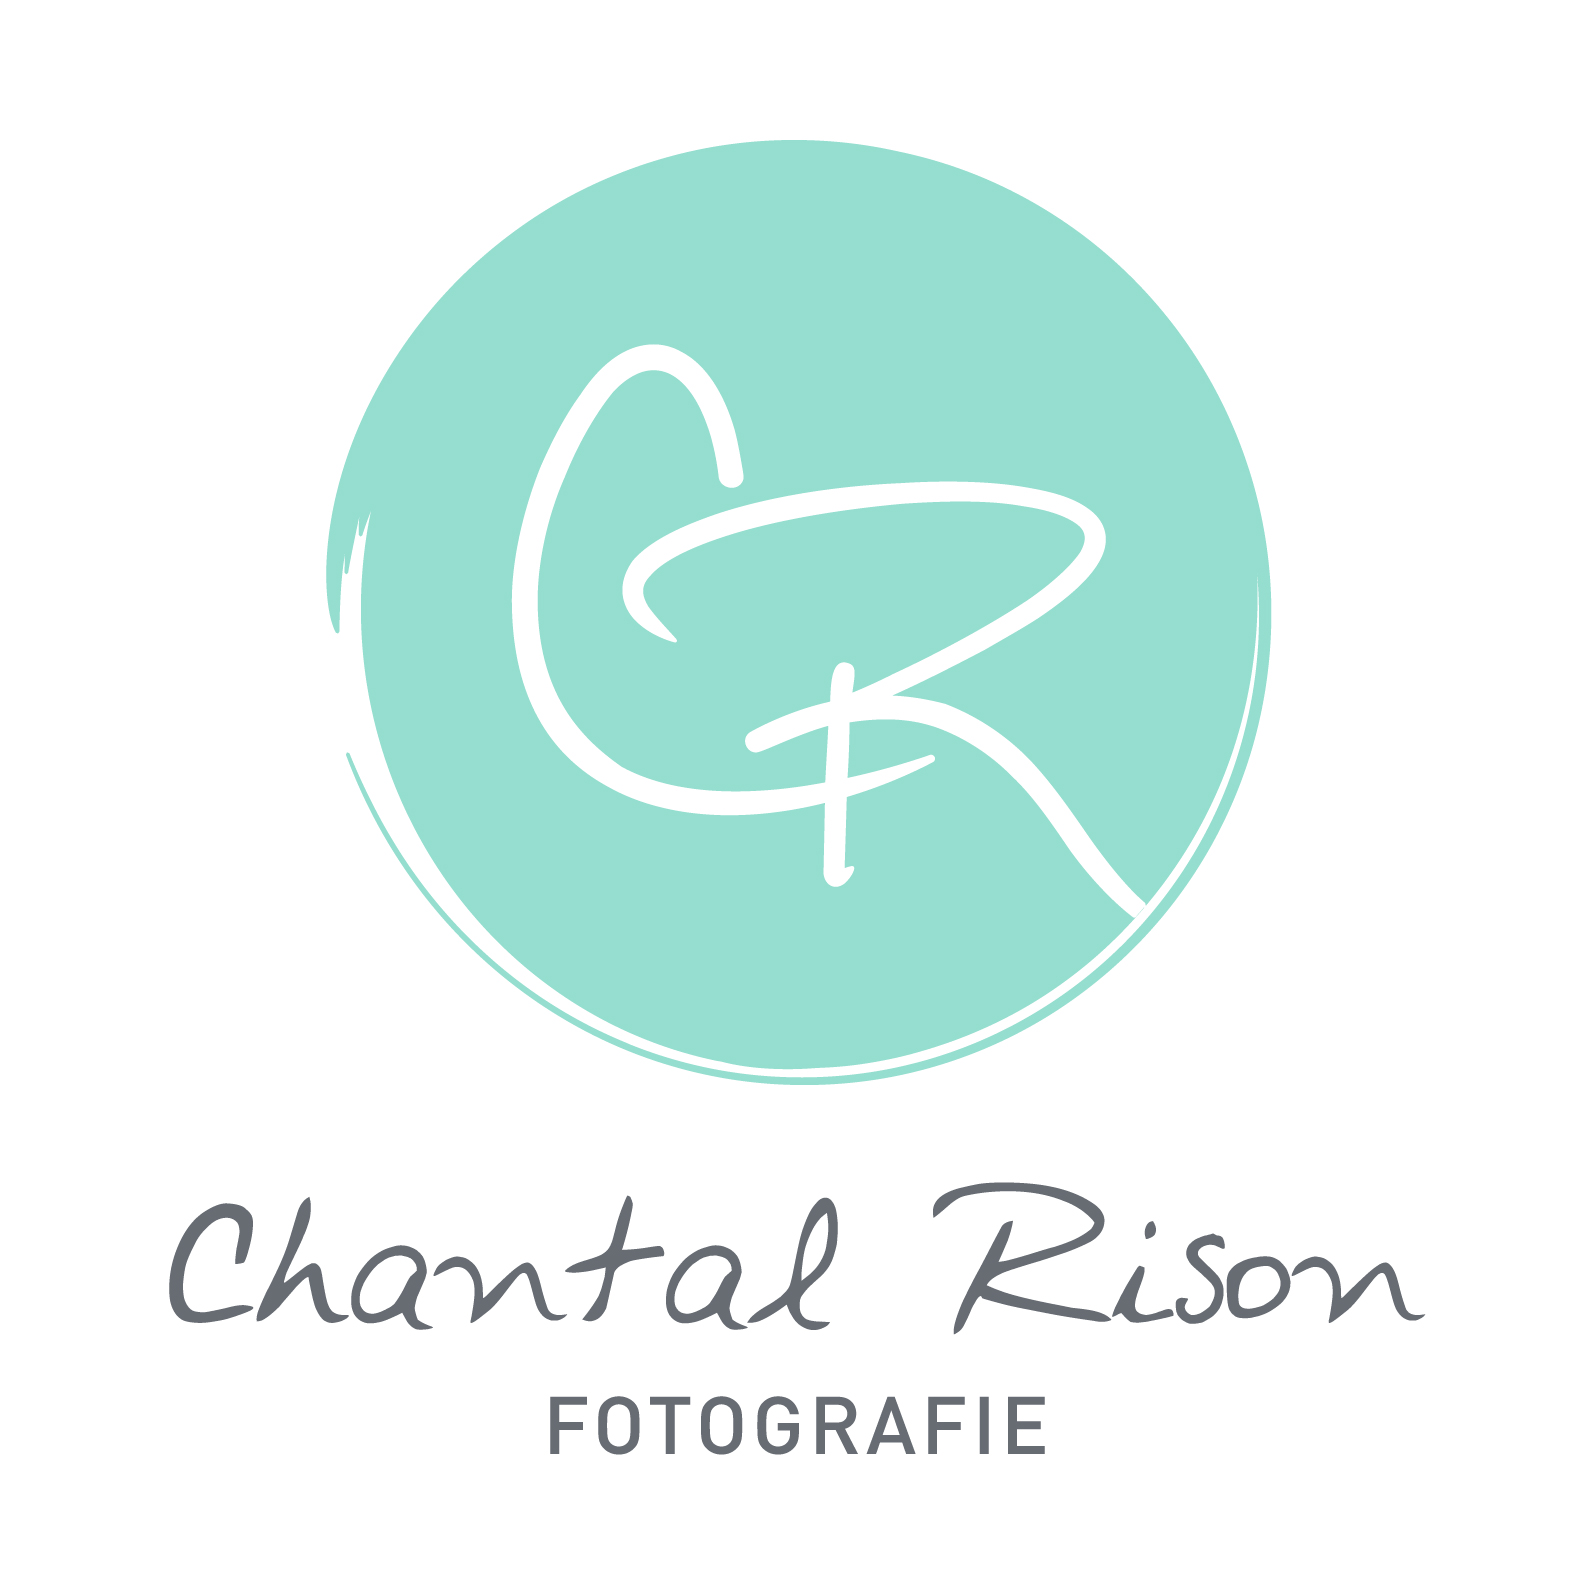 Chantal Rison Fotografie